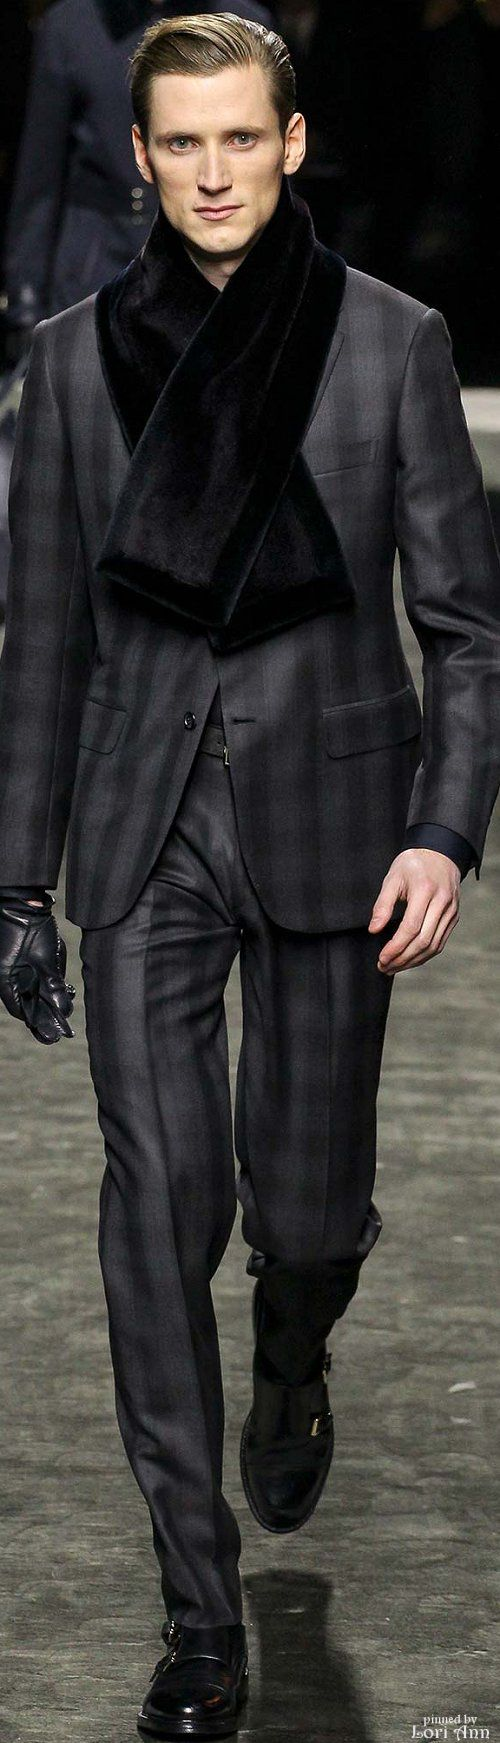 Brioni 2015   Men's Fashion   Menswear   Men's Outfit for Fall/Winter   Stylish and Sophisticated   Moda Masculina   Shop at designerclothingfans.com